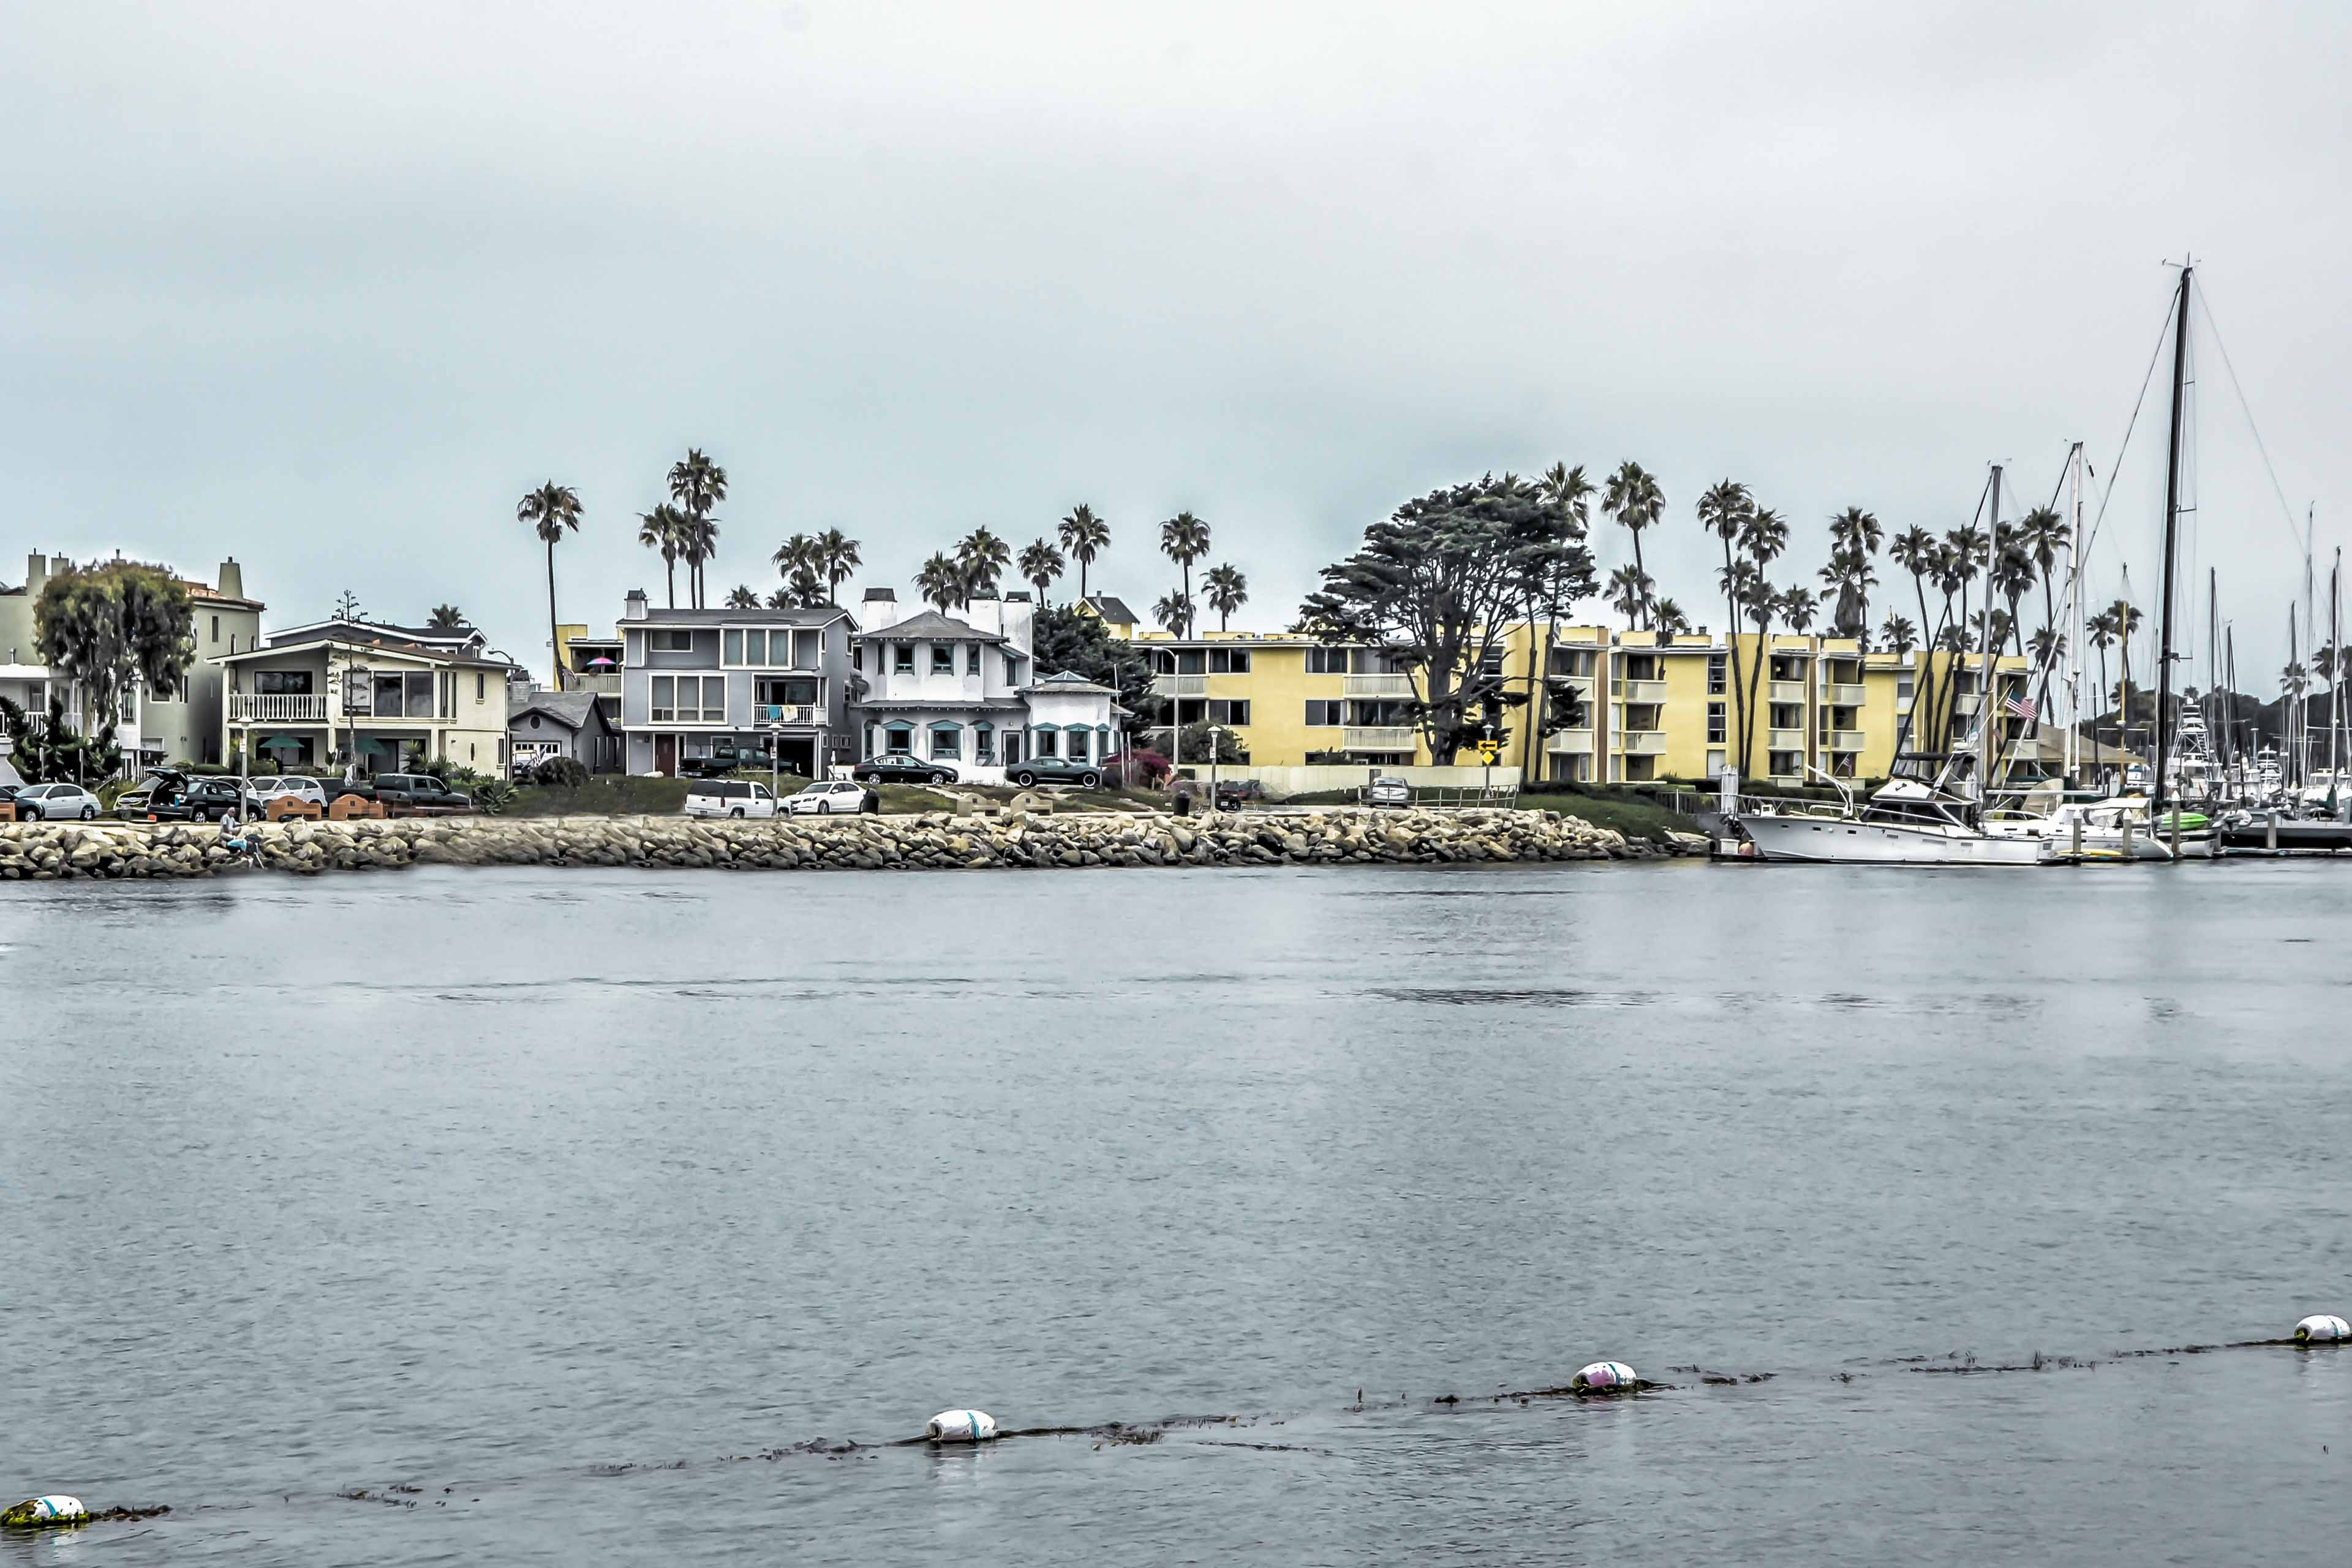 The Channel Islands Harbor offers fantastic dining, shopping and water sports.